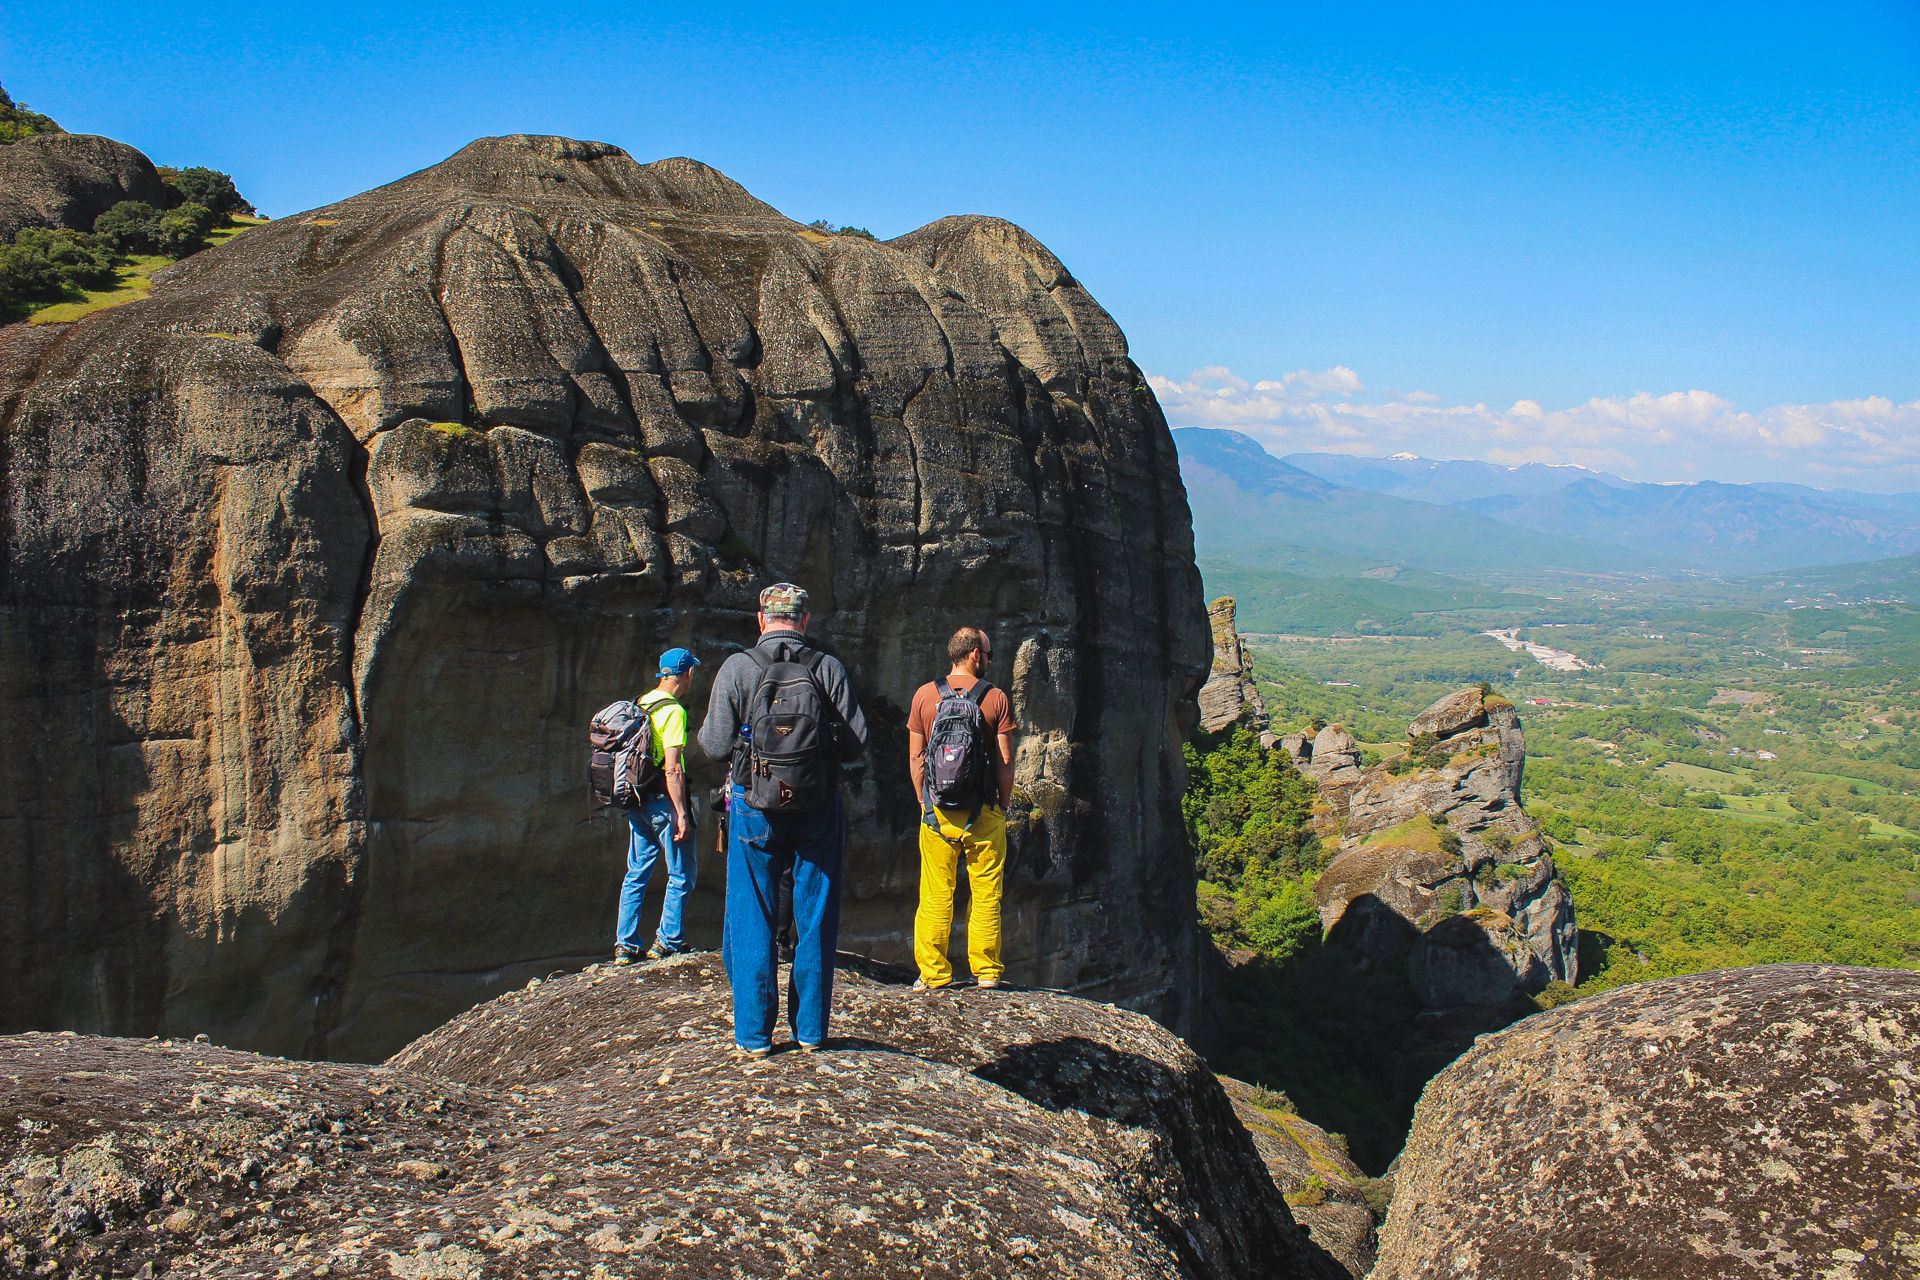 The magic of walking in Meteora is that the hiking paths are truly for the entire family